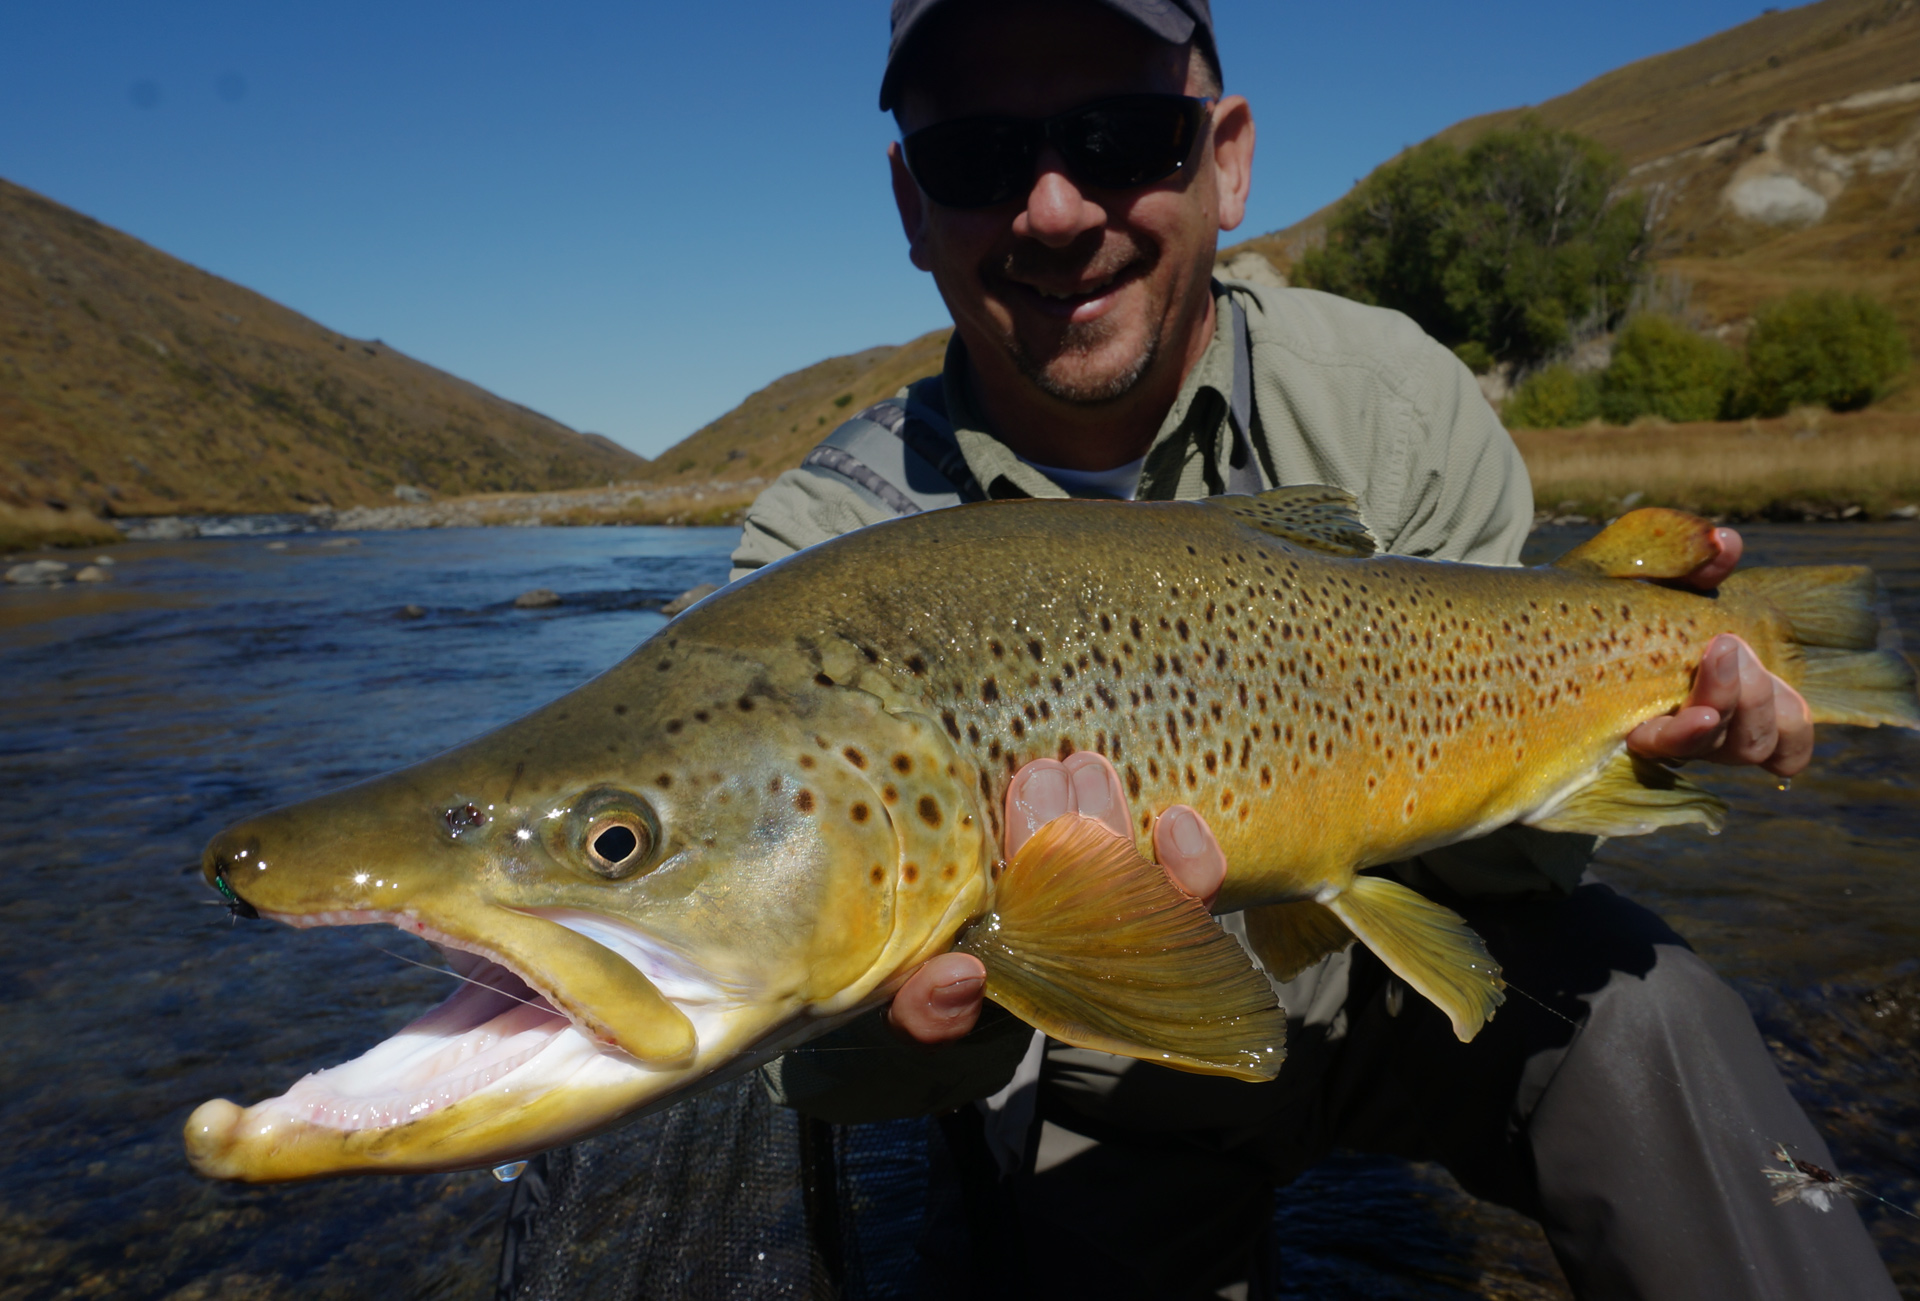 How to catch big brown trout bumpy water fly fishing blog for Brown trout fly fishing